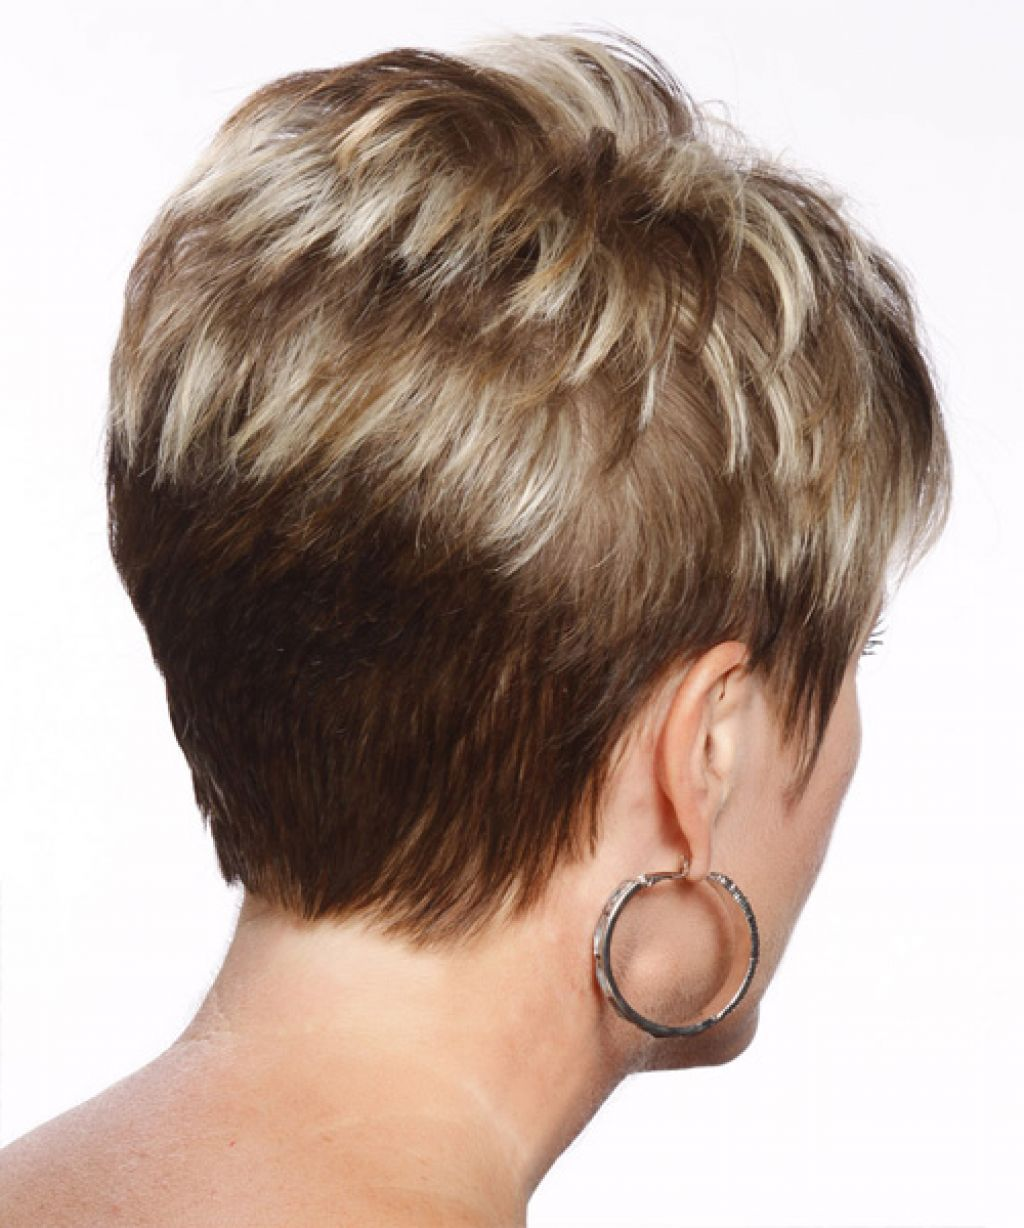 Image result for front and back view short hairstyles for women